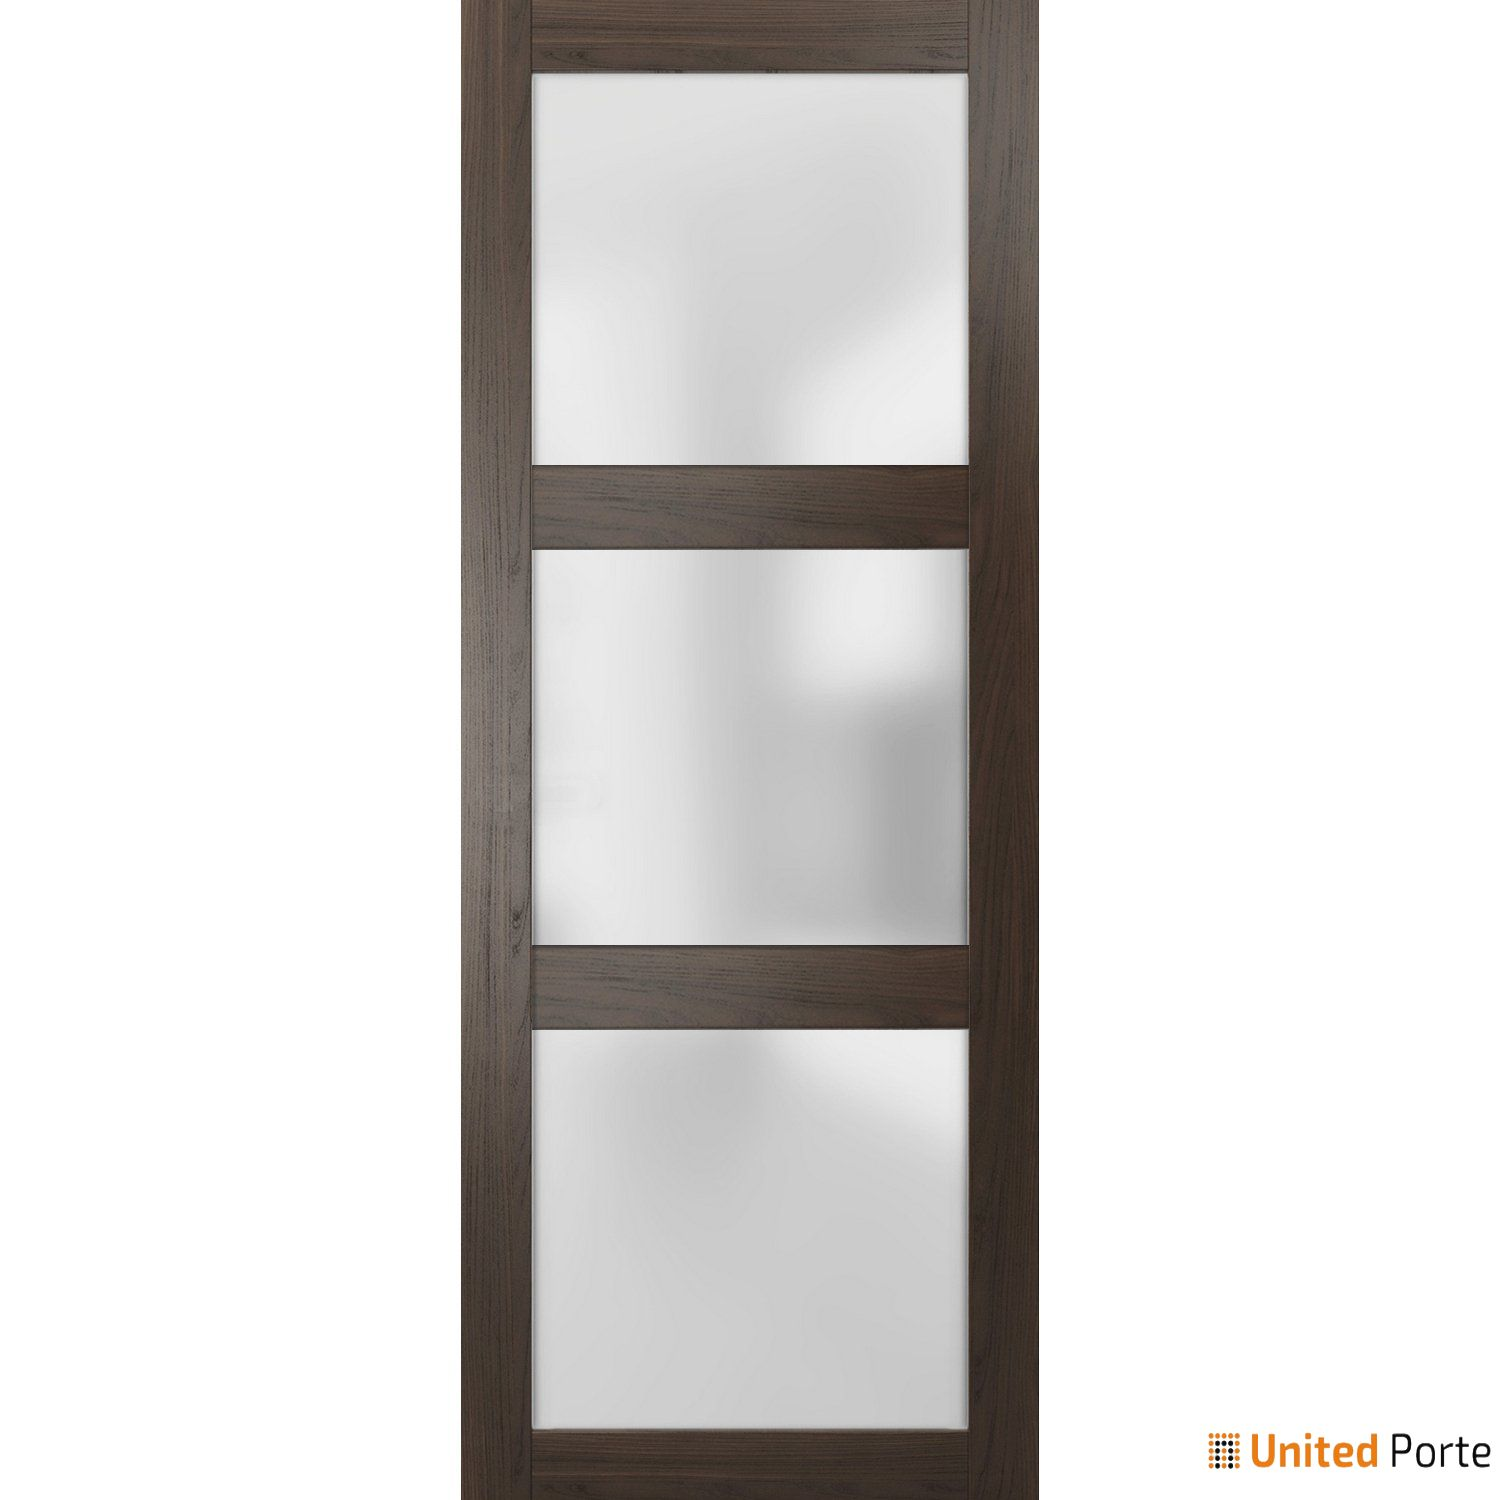 Lucia 2552 Chocolate Ash Sturdy Barn Door Frosted Glass Slab | Solid Panel Interior Barn Doors